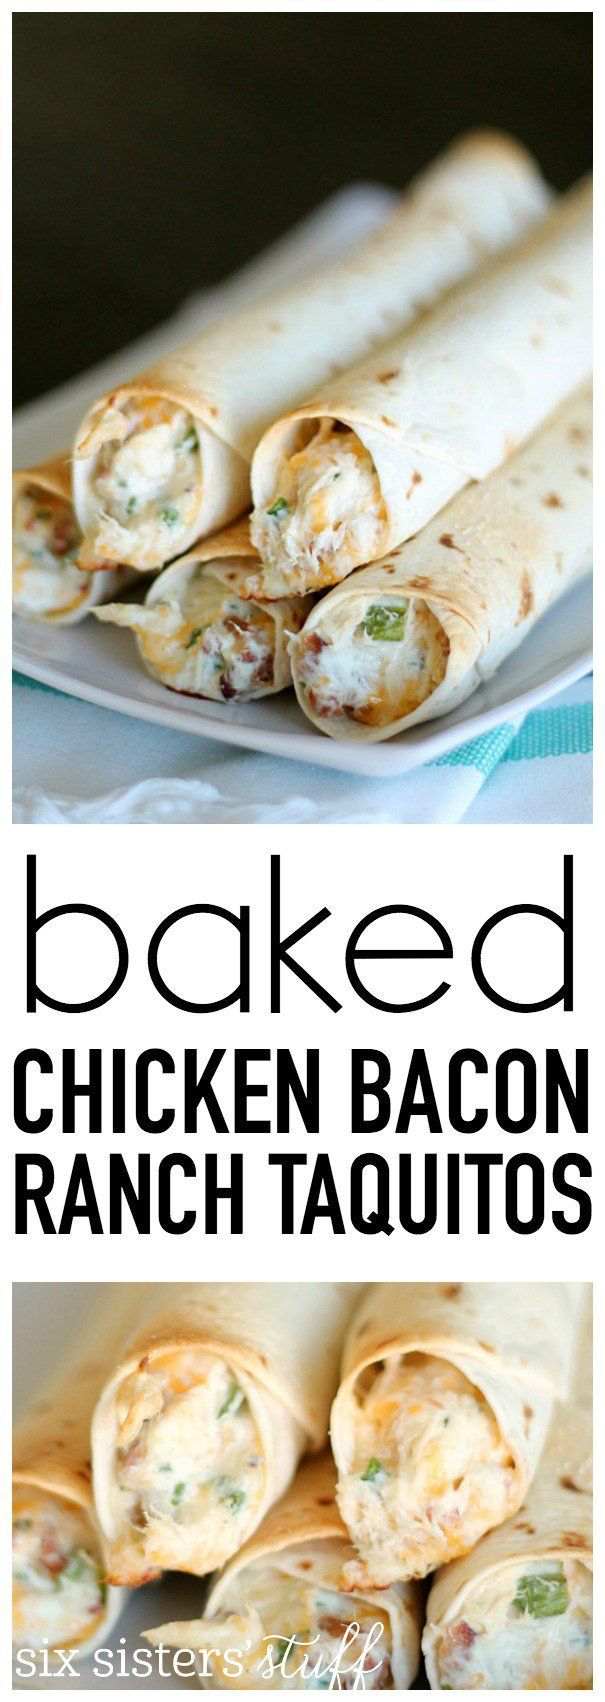 Chicken Bacon Ranch Taquitos from www.sixsistersstuff.com. Even my picky eaters love these!: